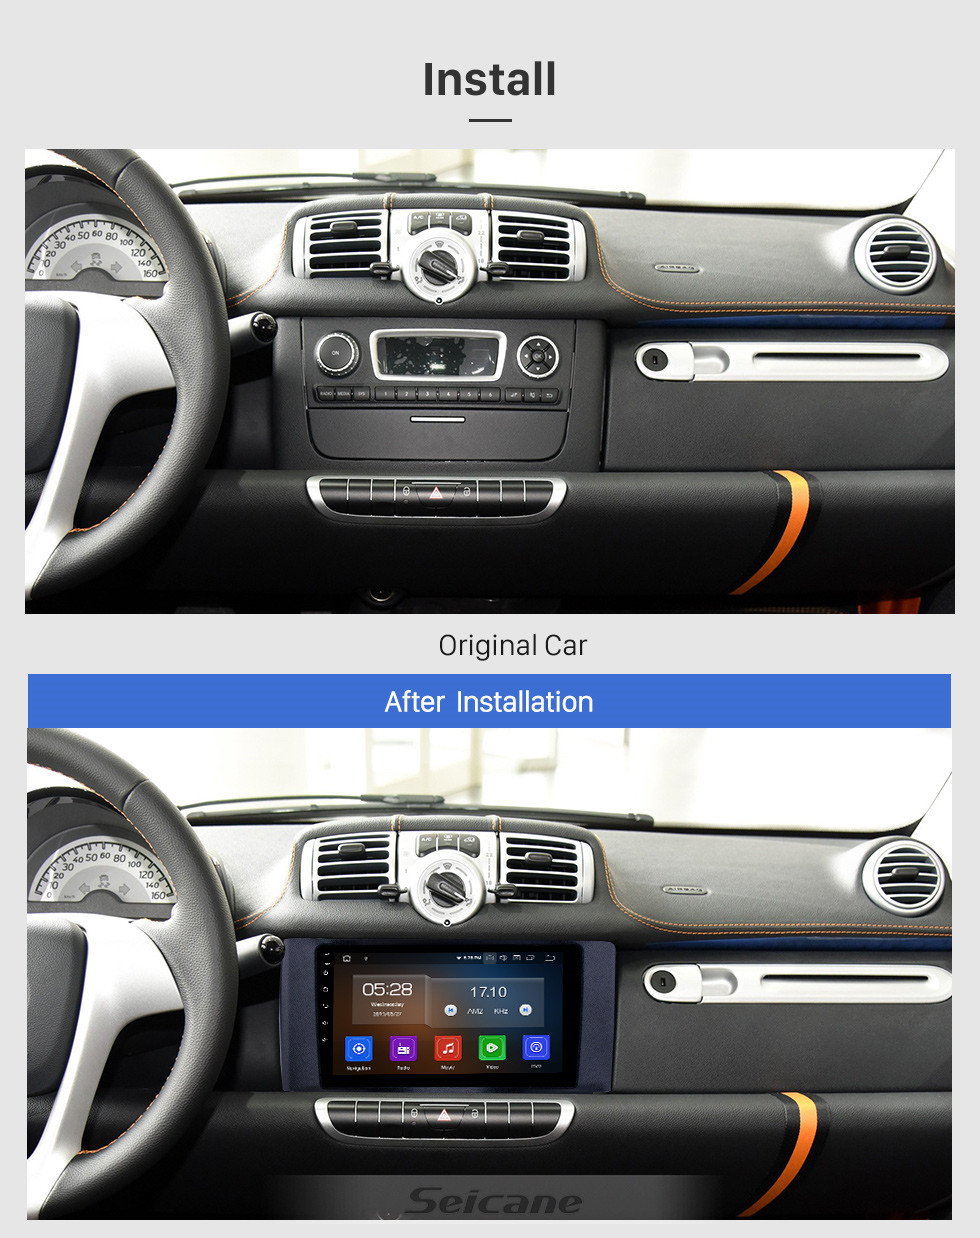 Seicane Android 10.0 9 inch 2011-2015 Mercedes Benz SMART GPS Navigation Stereo with WIFI Bluetooth USB AUX Carplay support TPMS SWC DVD player Steering Wheel Control